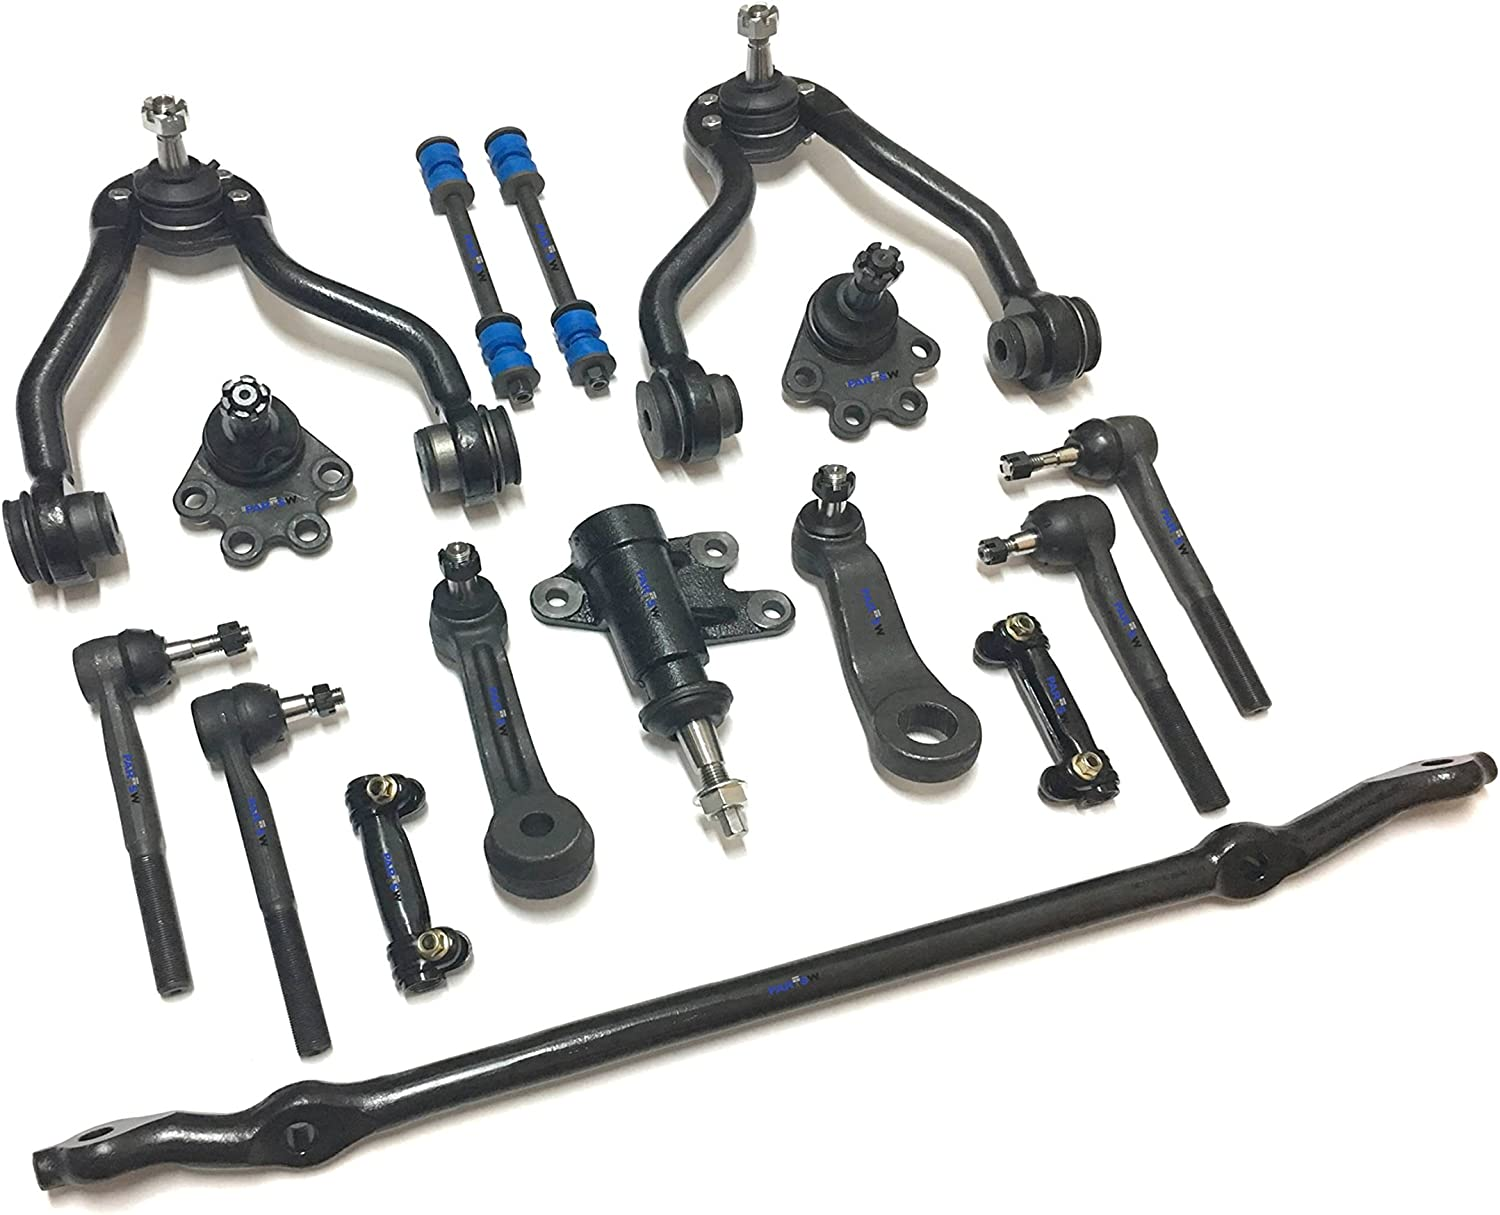 PartsW 16 Pc Suspension Kit for Chevrolet & GMC Truck, Center Link (FOR FREE) Adjusting Sleeves Tie Rod Ends Ball Joints (Bolt On Types) Idler & Pitman Arms Sway Bars Upper Control Arms